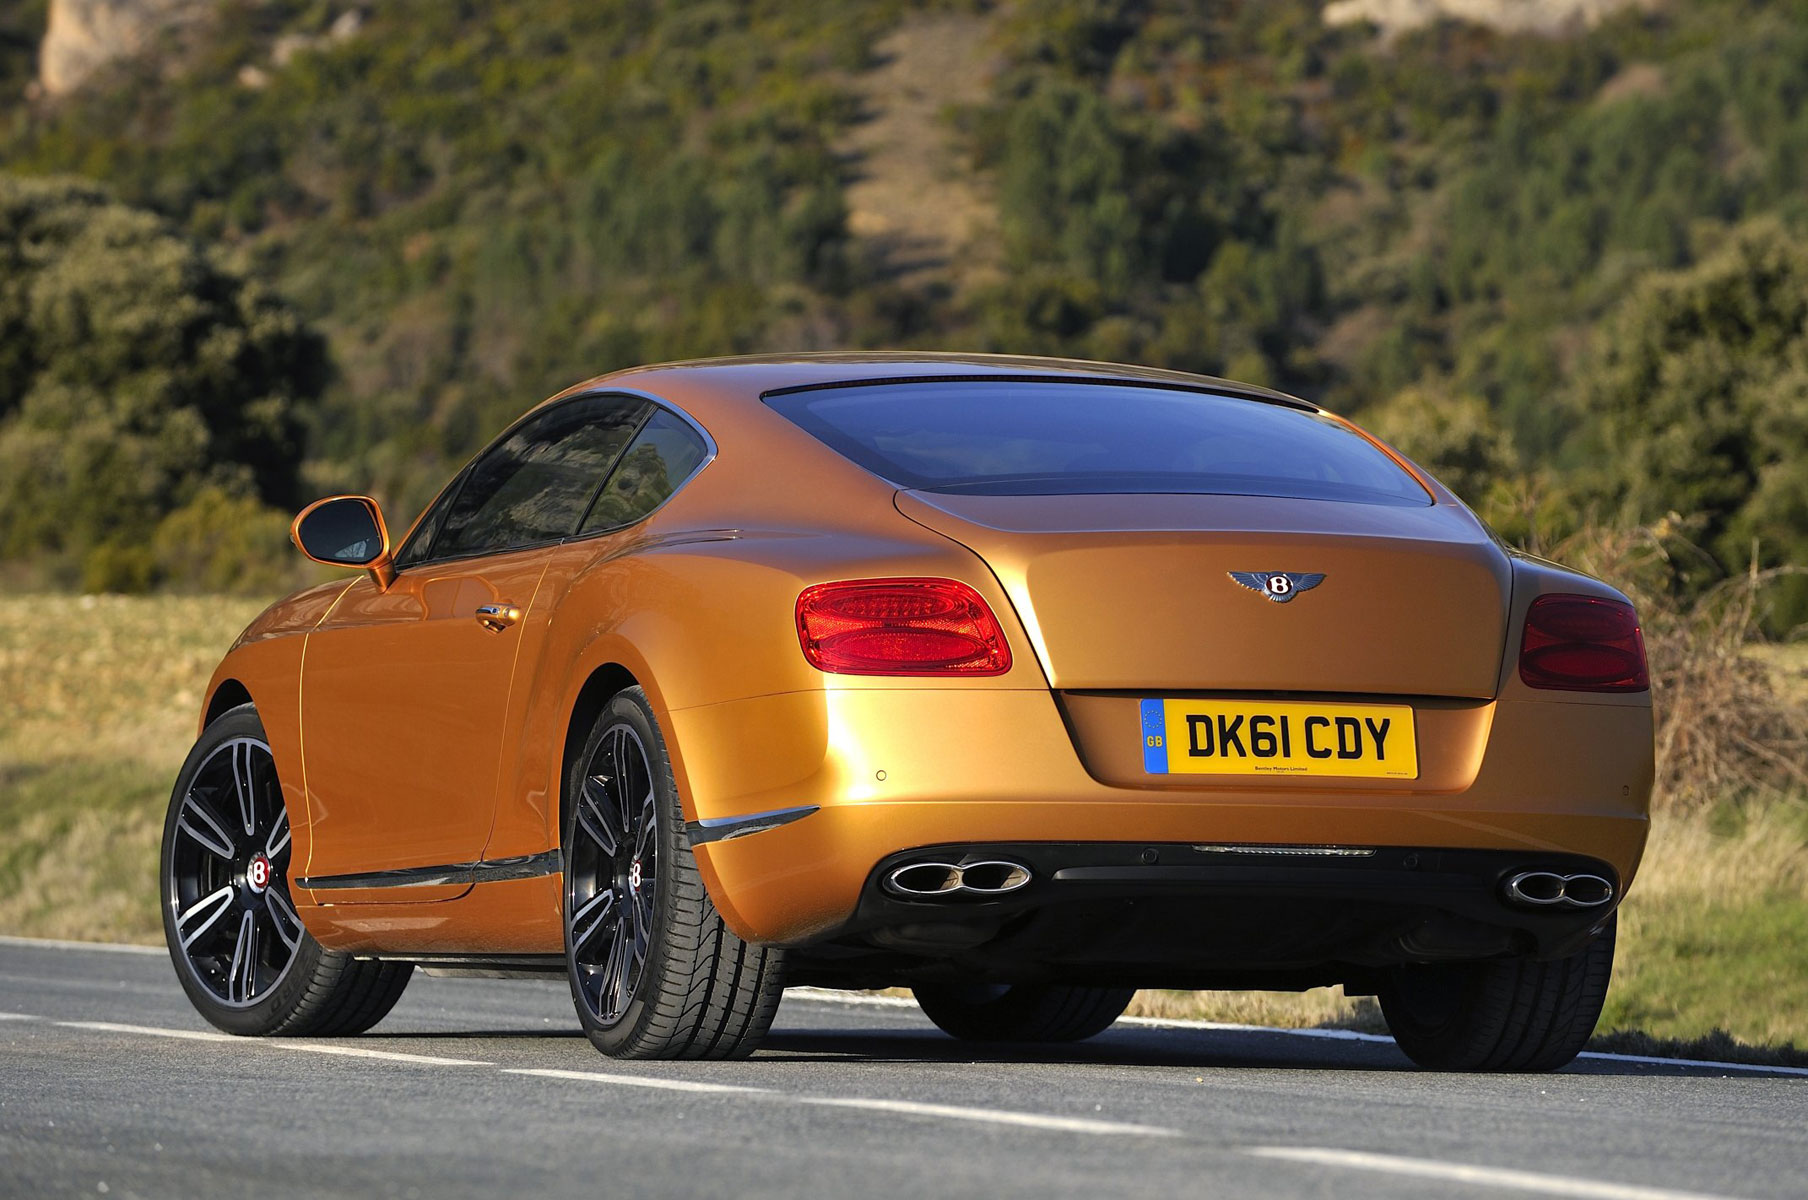 New Bentley Continental Gt V8 Makes Debut In China